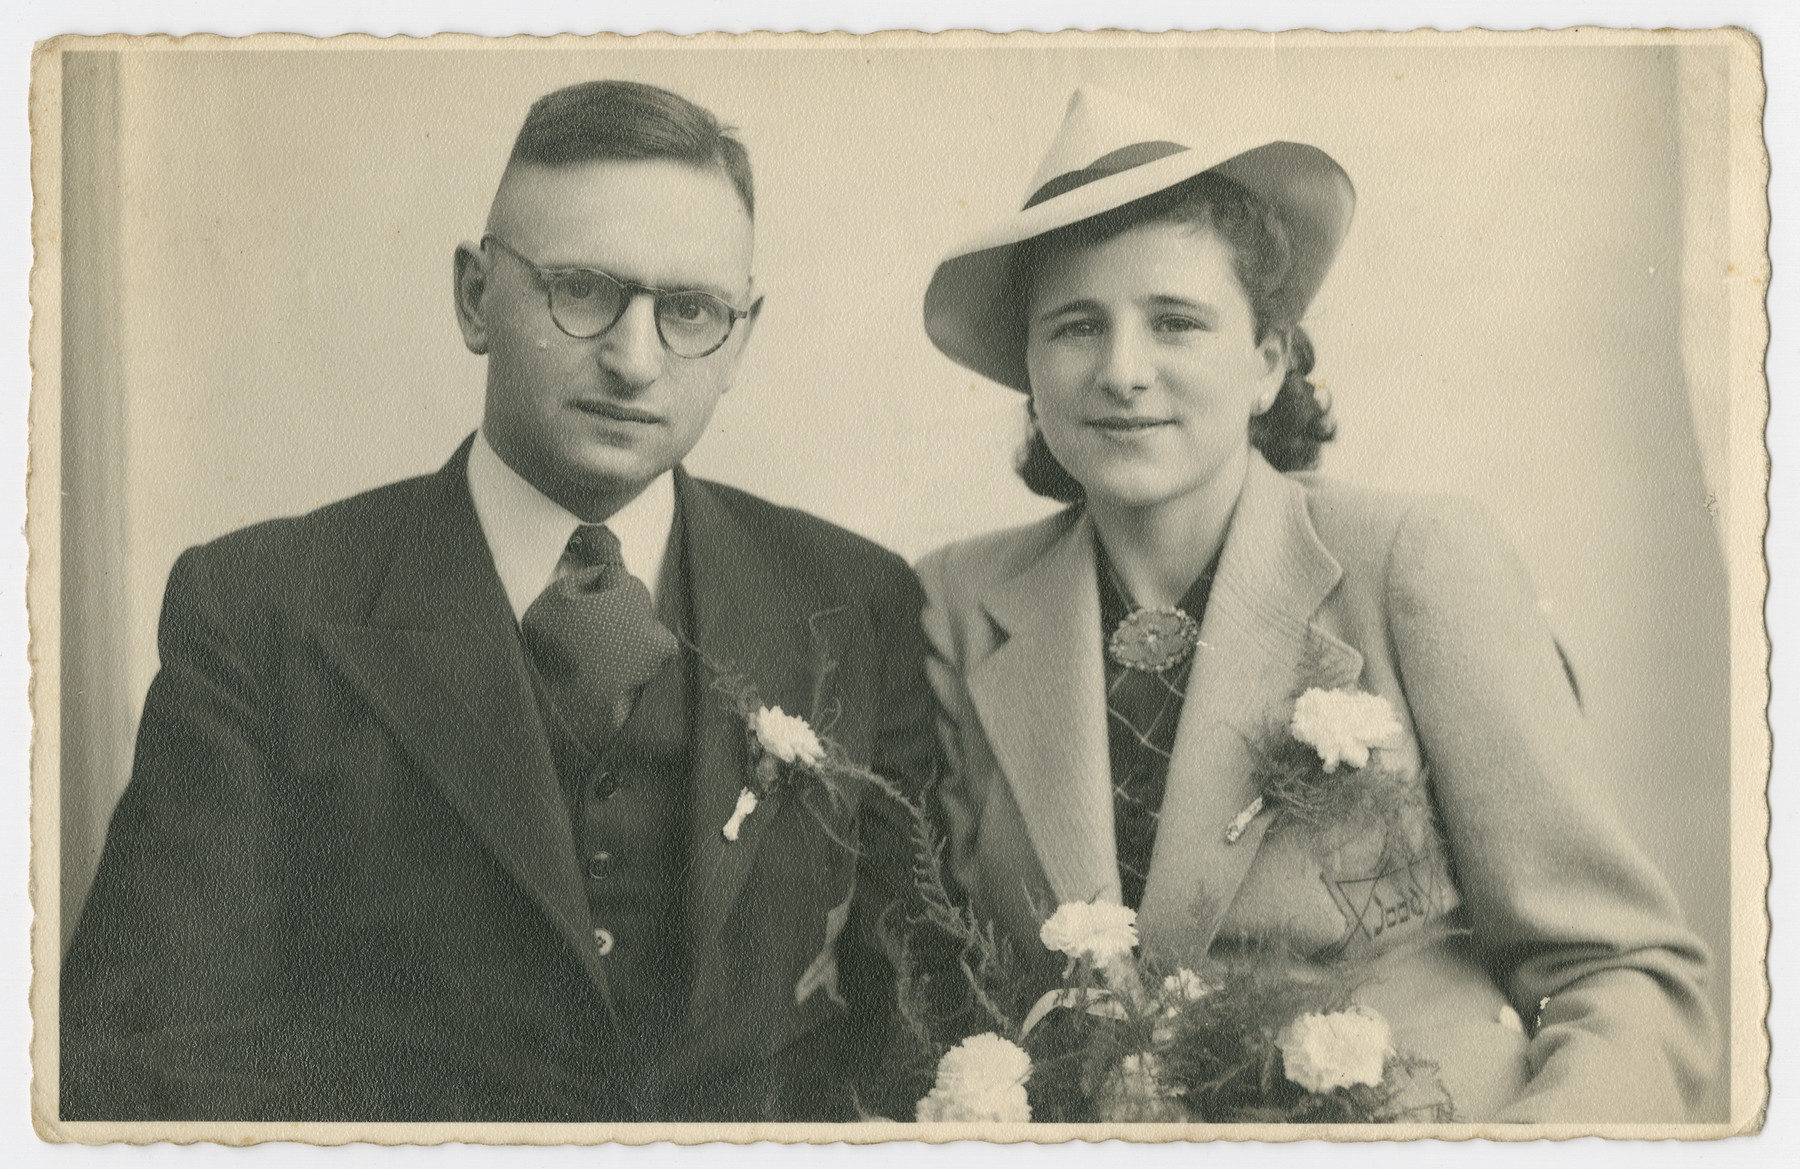 Wedding portrait of Lenny Kropveld and Rabbi Yitzchak Jedwab.  Both are wearing Stars of David.